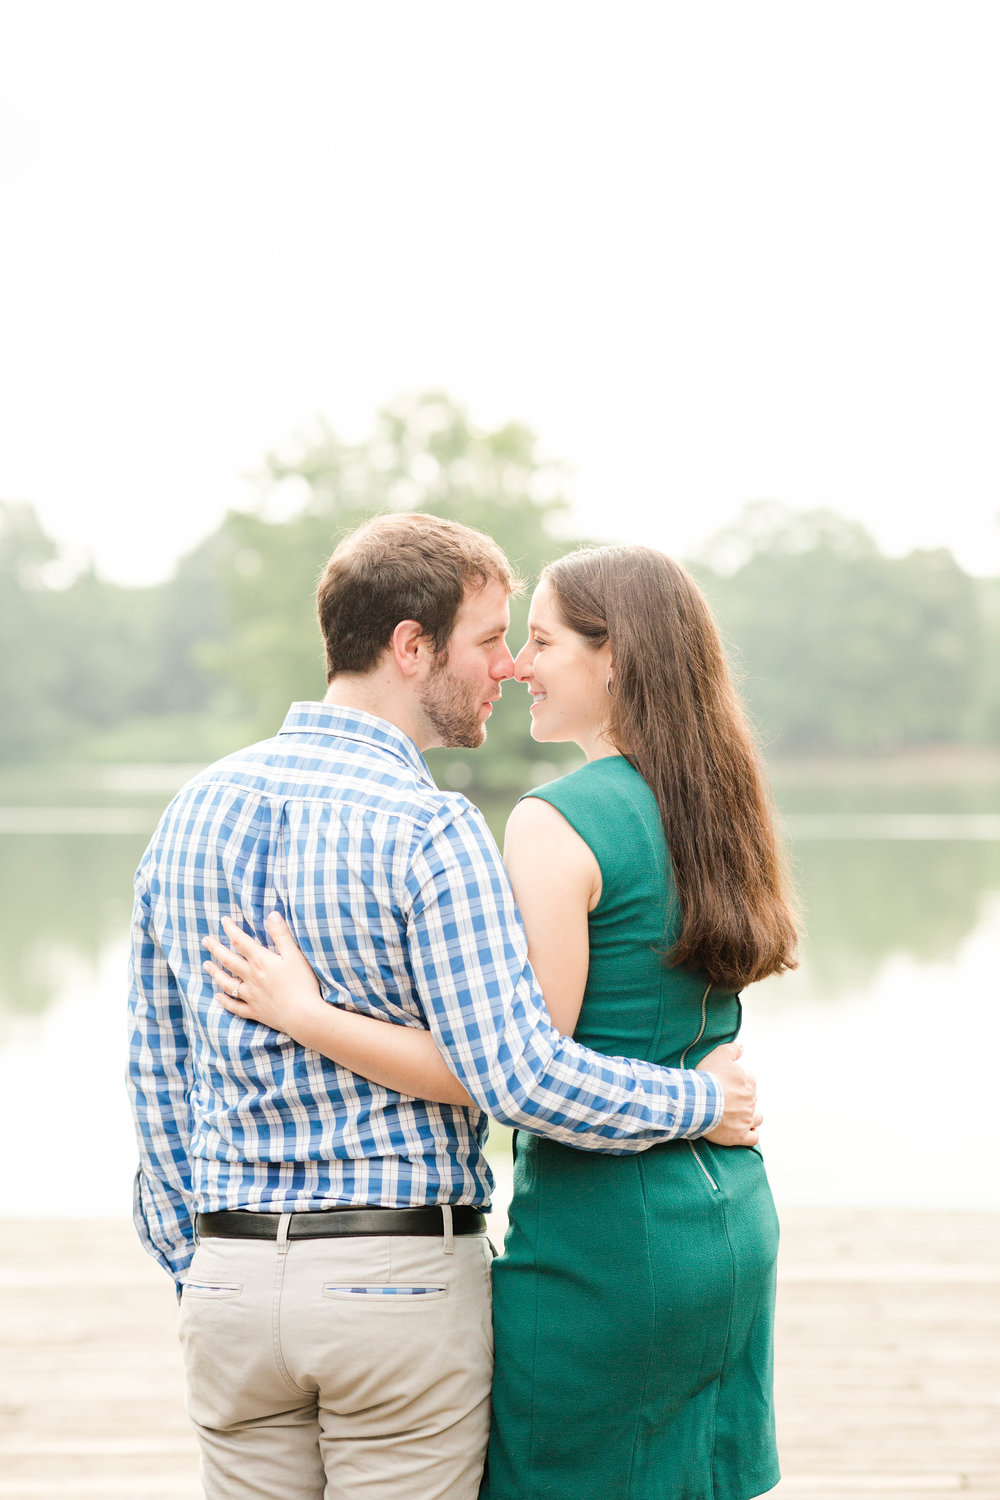 Katie_Pete_Engagement-56.JPG